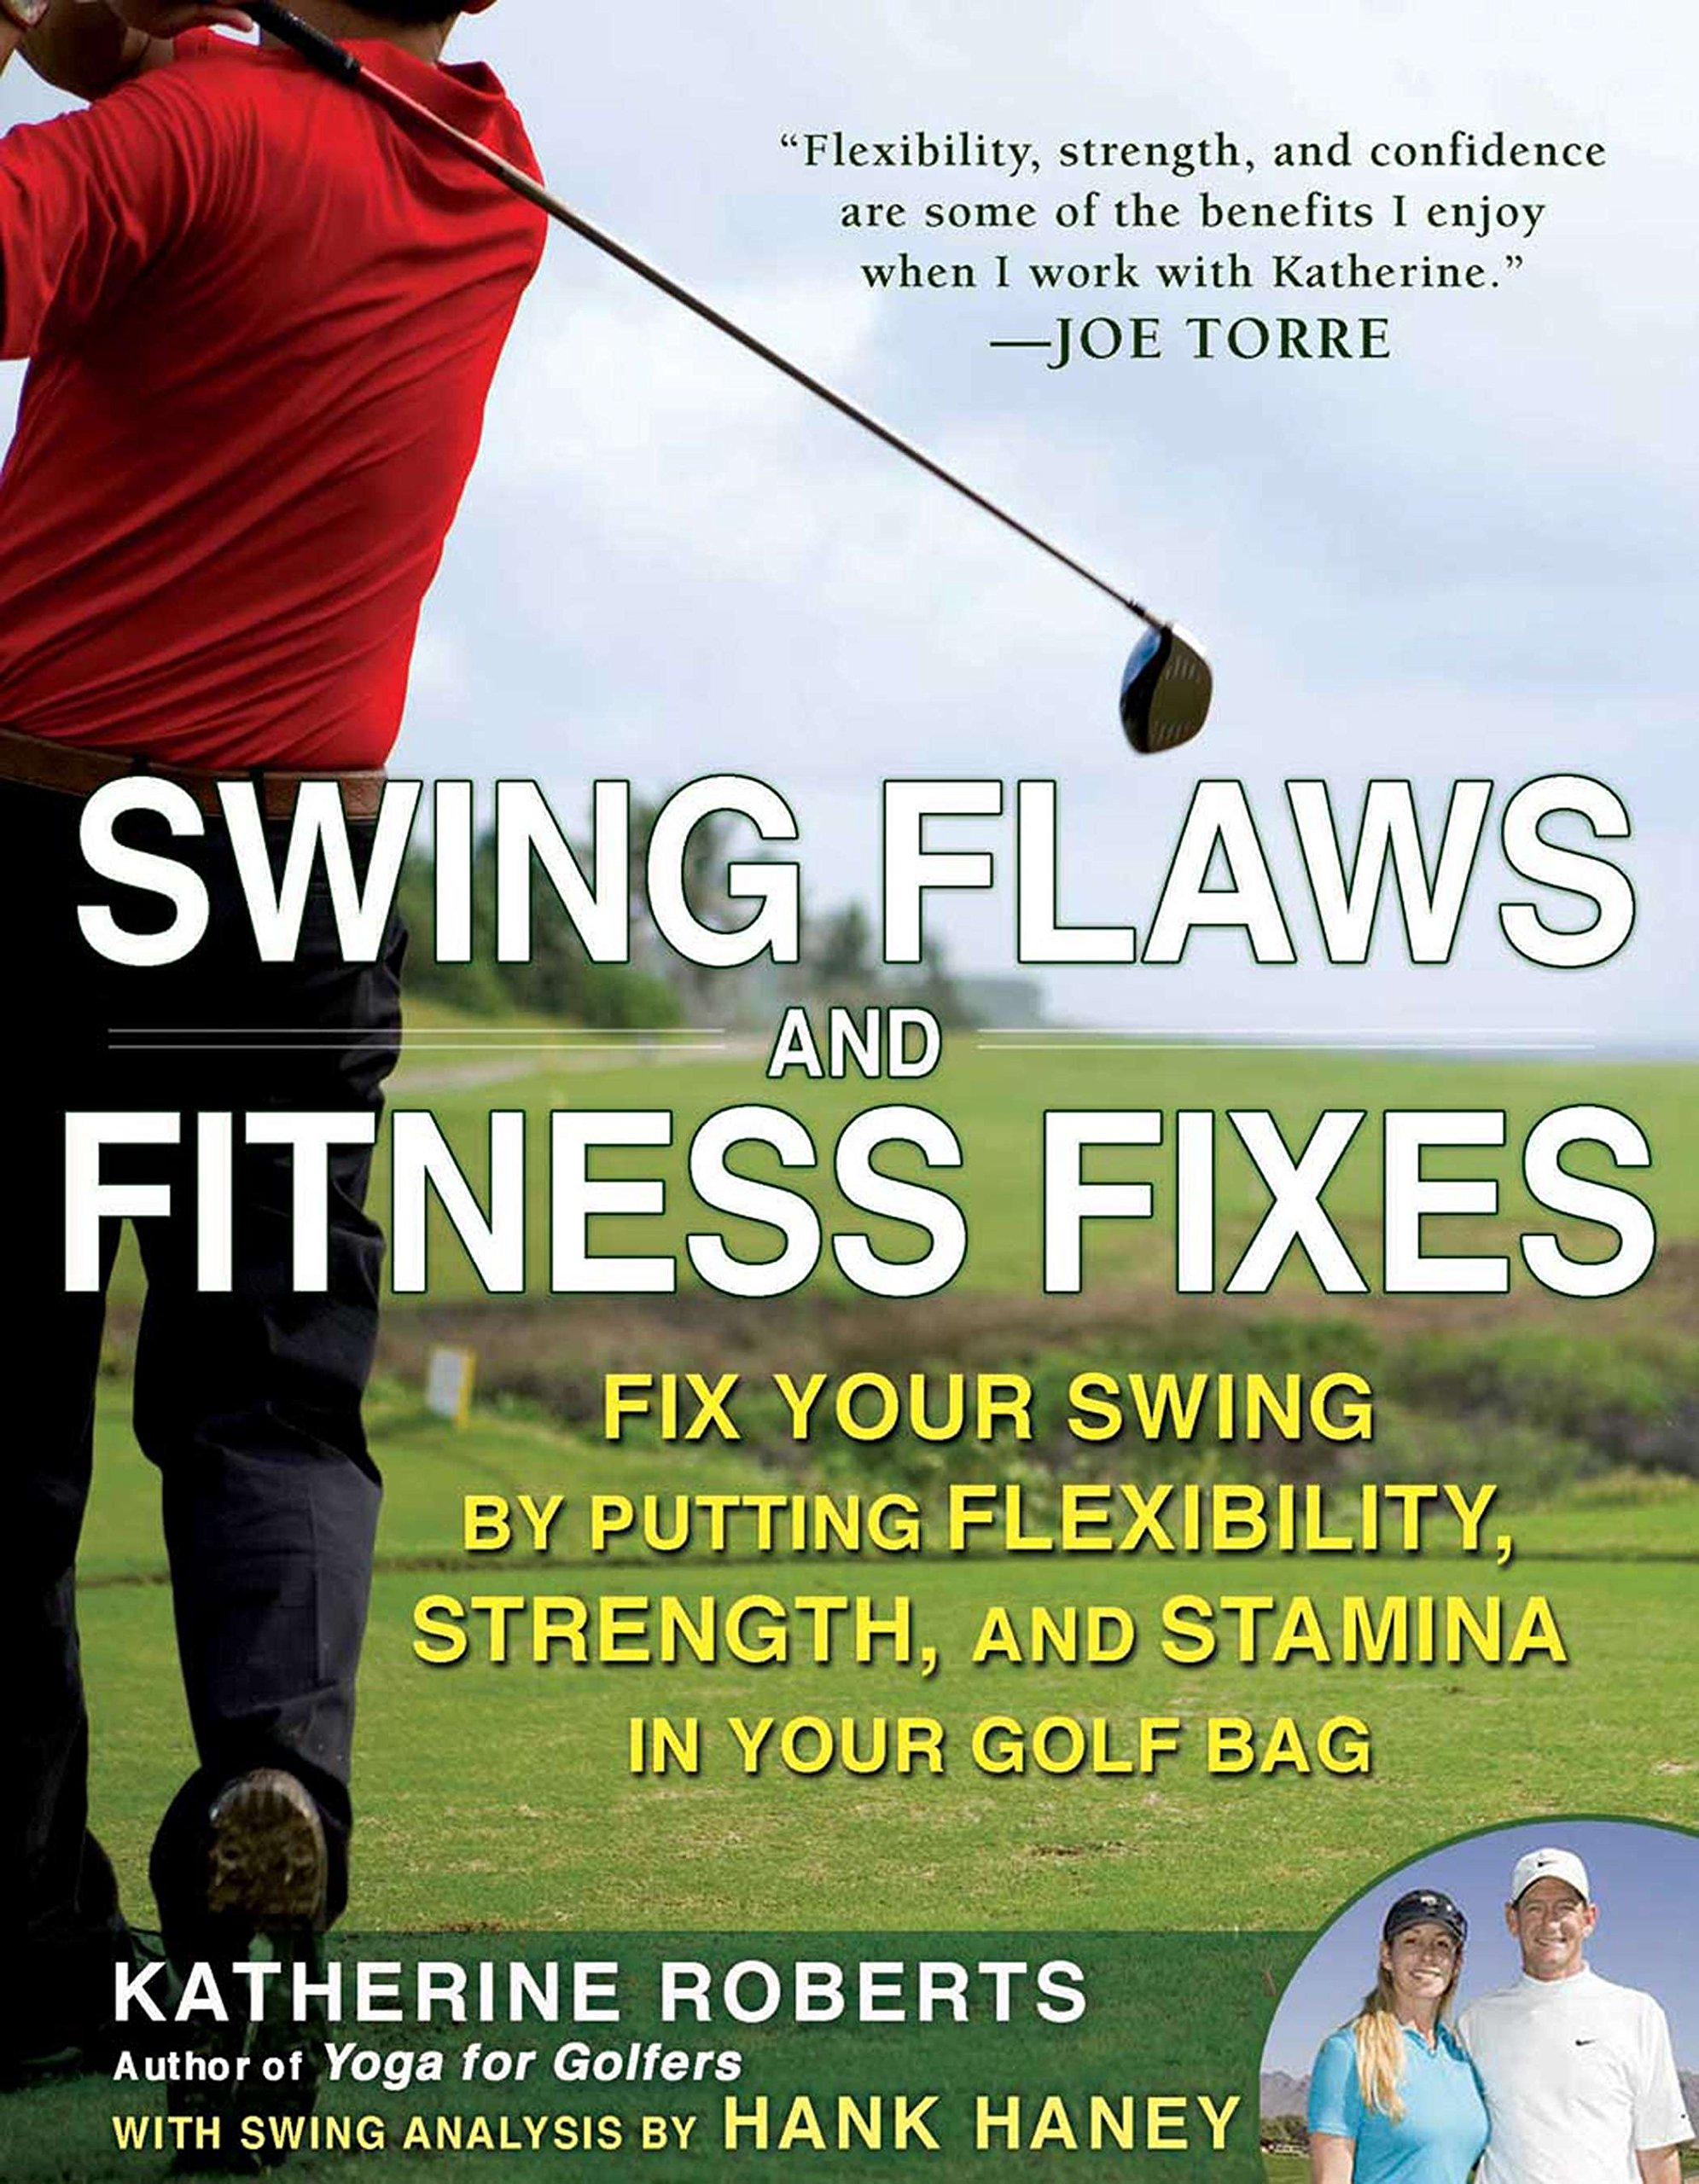 Swing Flaws and Fitness Fixes: Fix Your Swing by Putting Flexibility, Strength, and Stamina in Your Golf Bag PDF